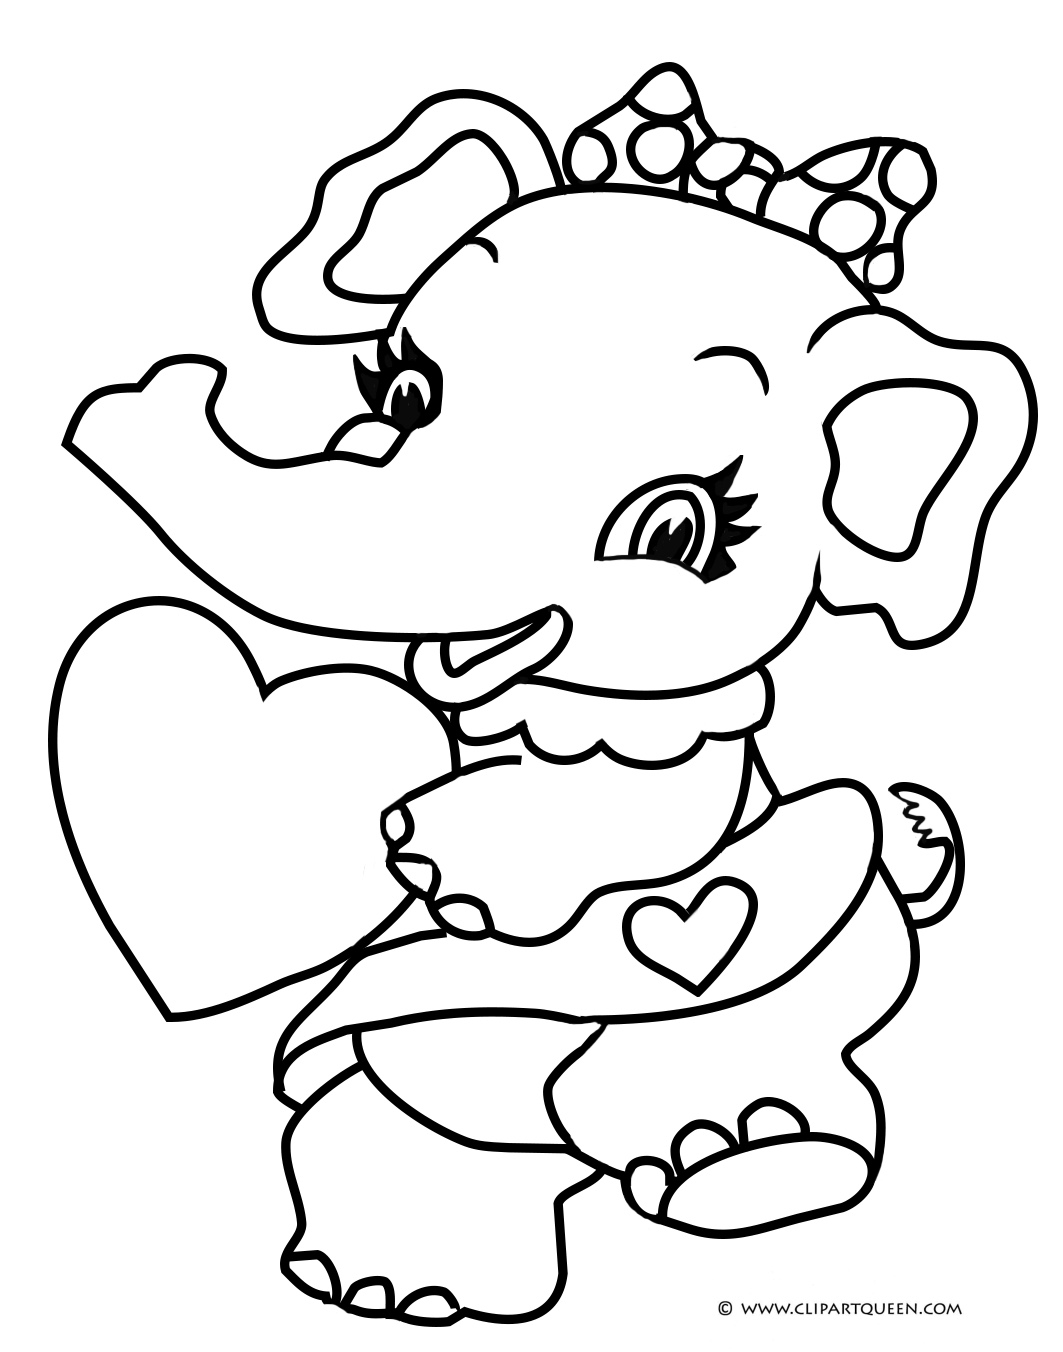 1063x1352 Coloring Pages For Girls Elephant Weekly Printable Coloring